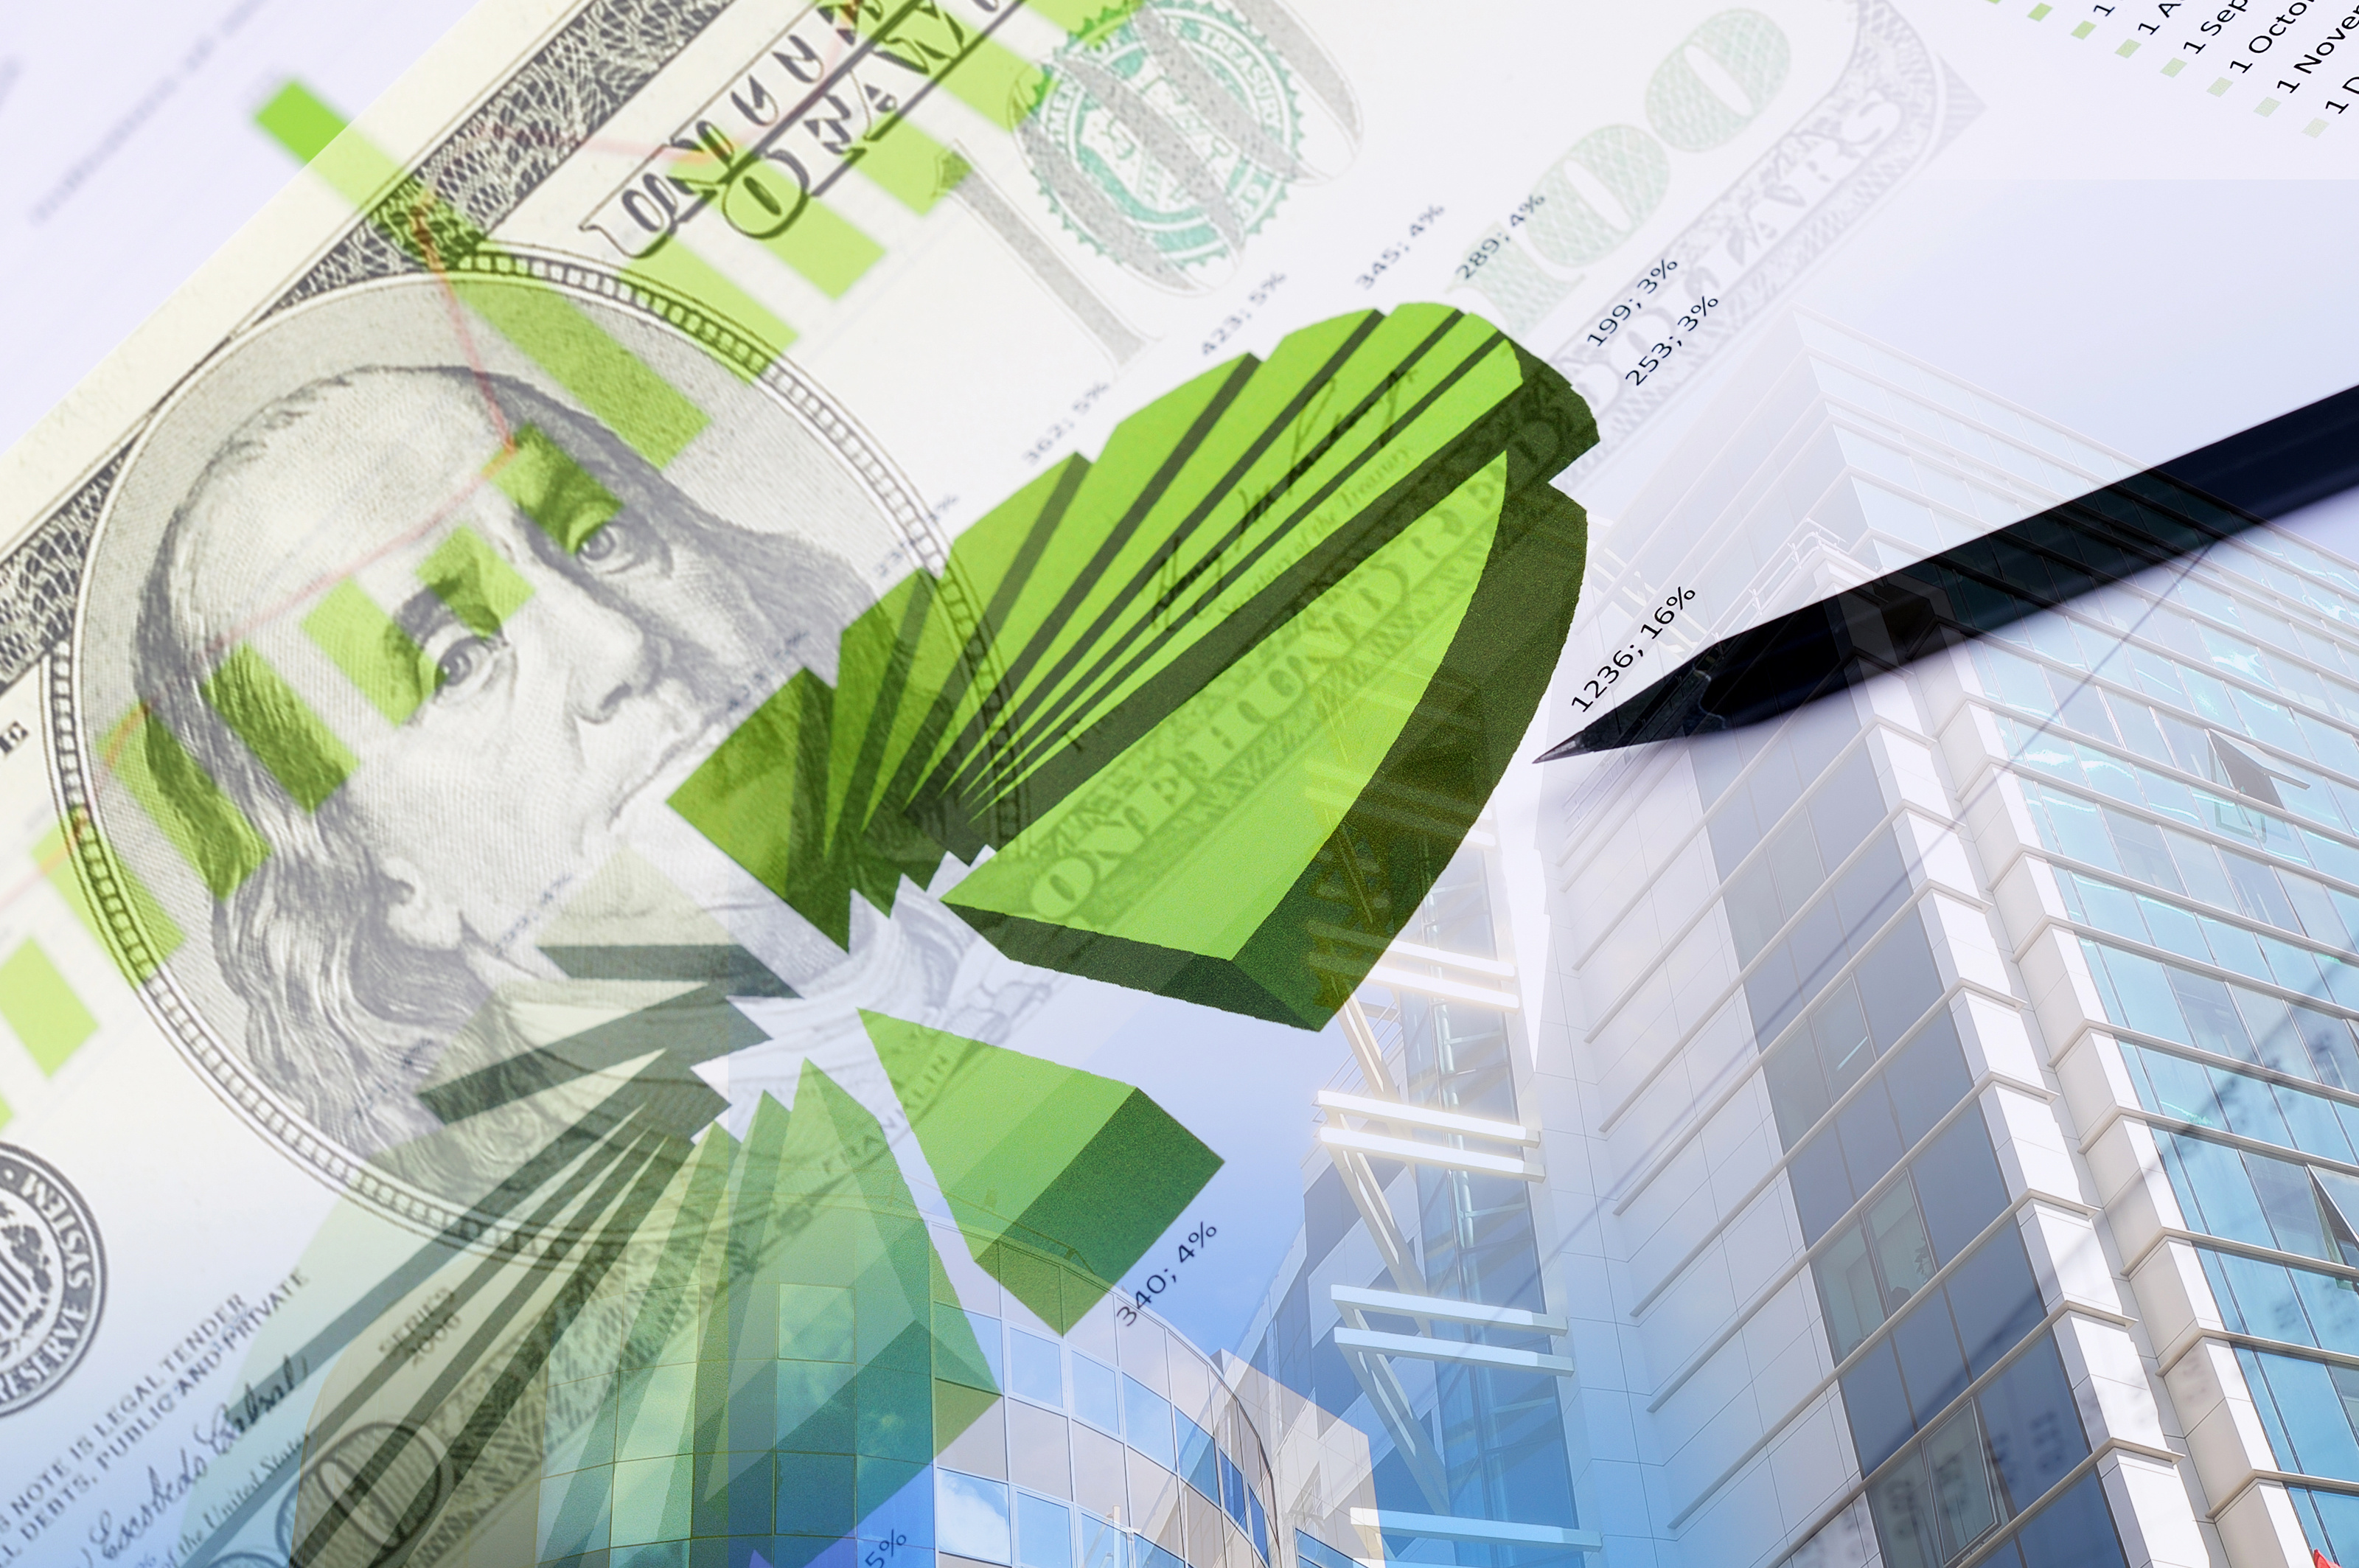 GE Refinances $5B in Bonds to Head Off 'Fiscal Cliff;' Keith Sherin Comments - top government contractors - best government contracting event